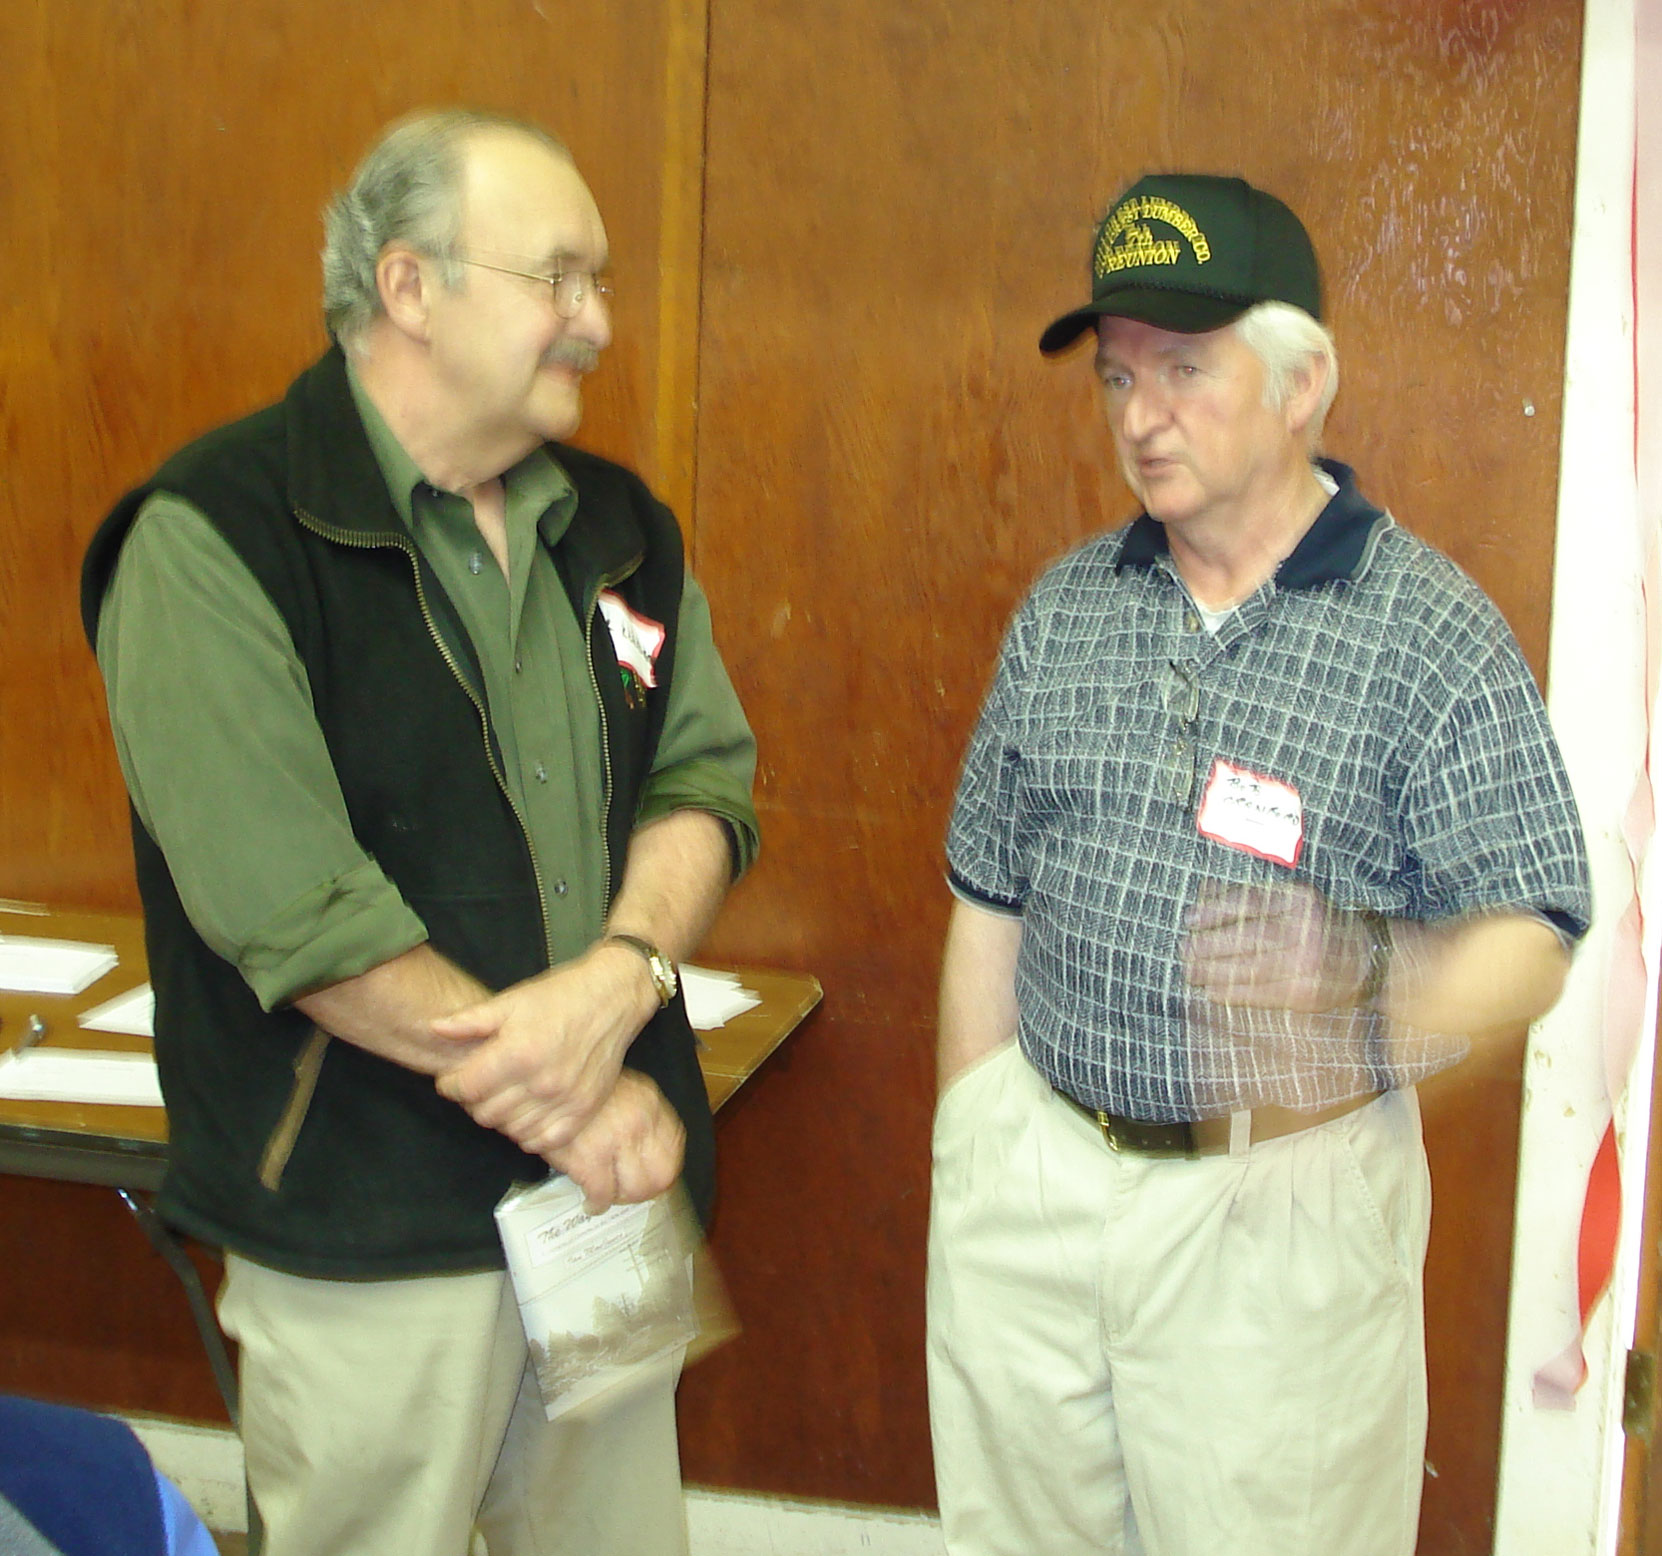 Bob Crawford (right) with Al Lundgren, IWA Safety Director, who worked with Bob as a faller at Hillcrest Lumber Company. Taken at Hillcrest Lumber Company Employees Reunion, 2007. (photo: Cecil Ashley)